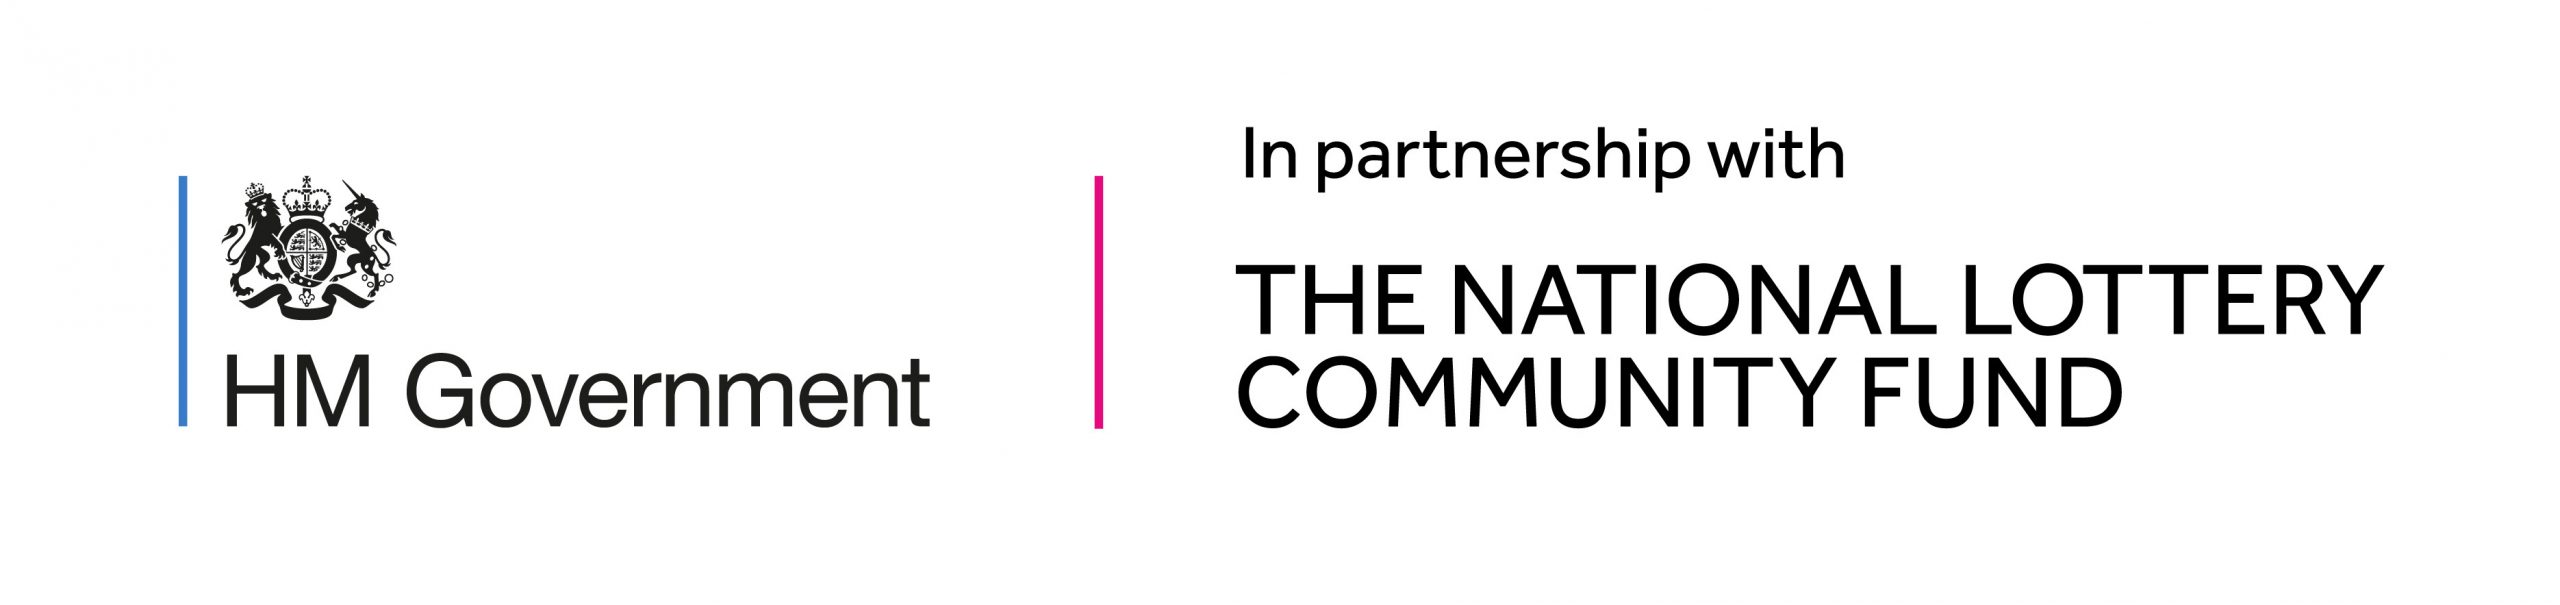 Logo of HM Government in partnership with The NAtional Lottery Community Fund